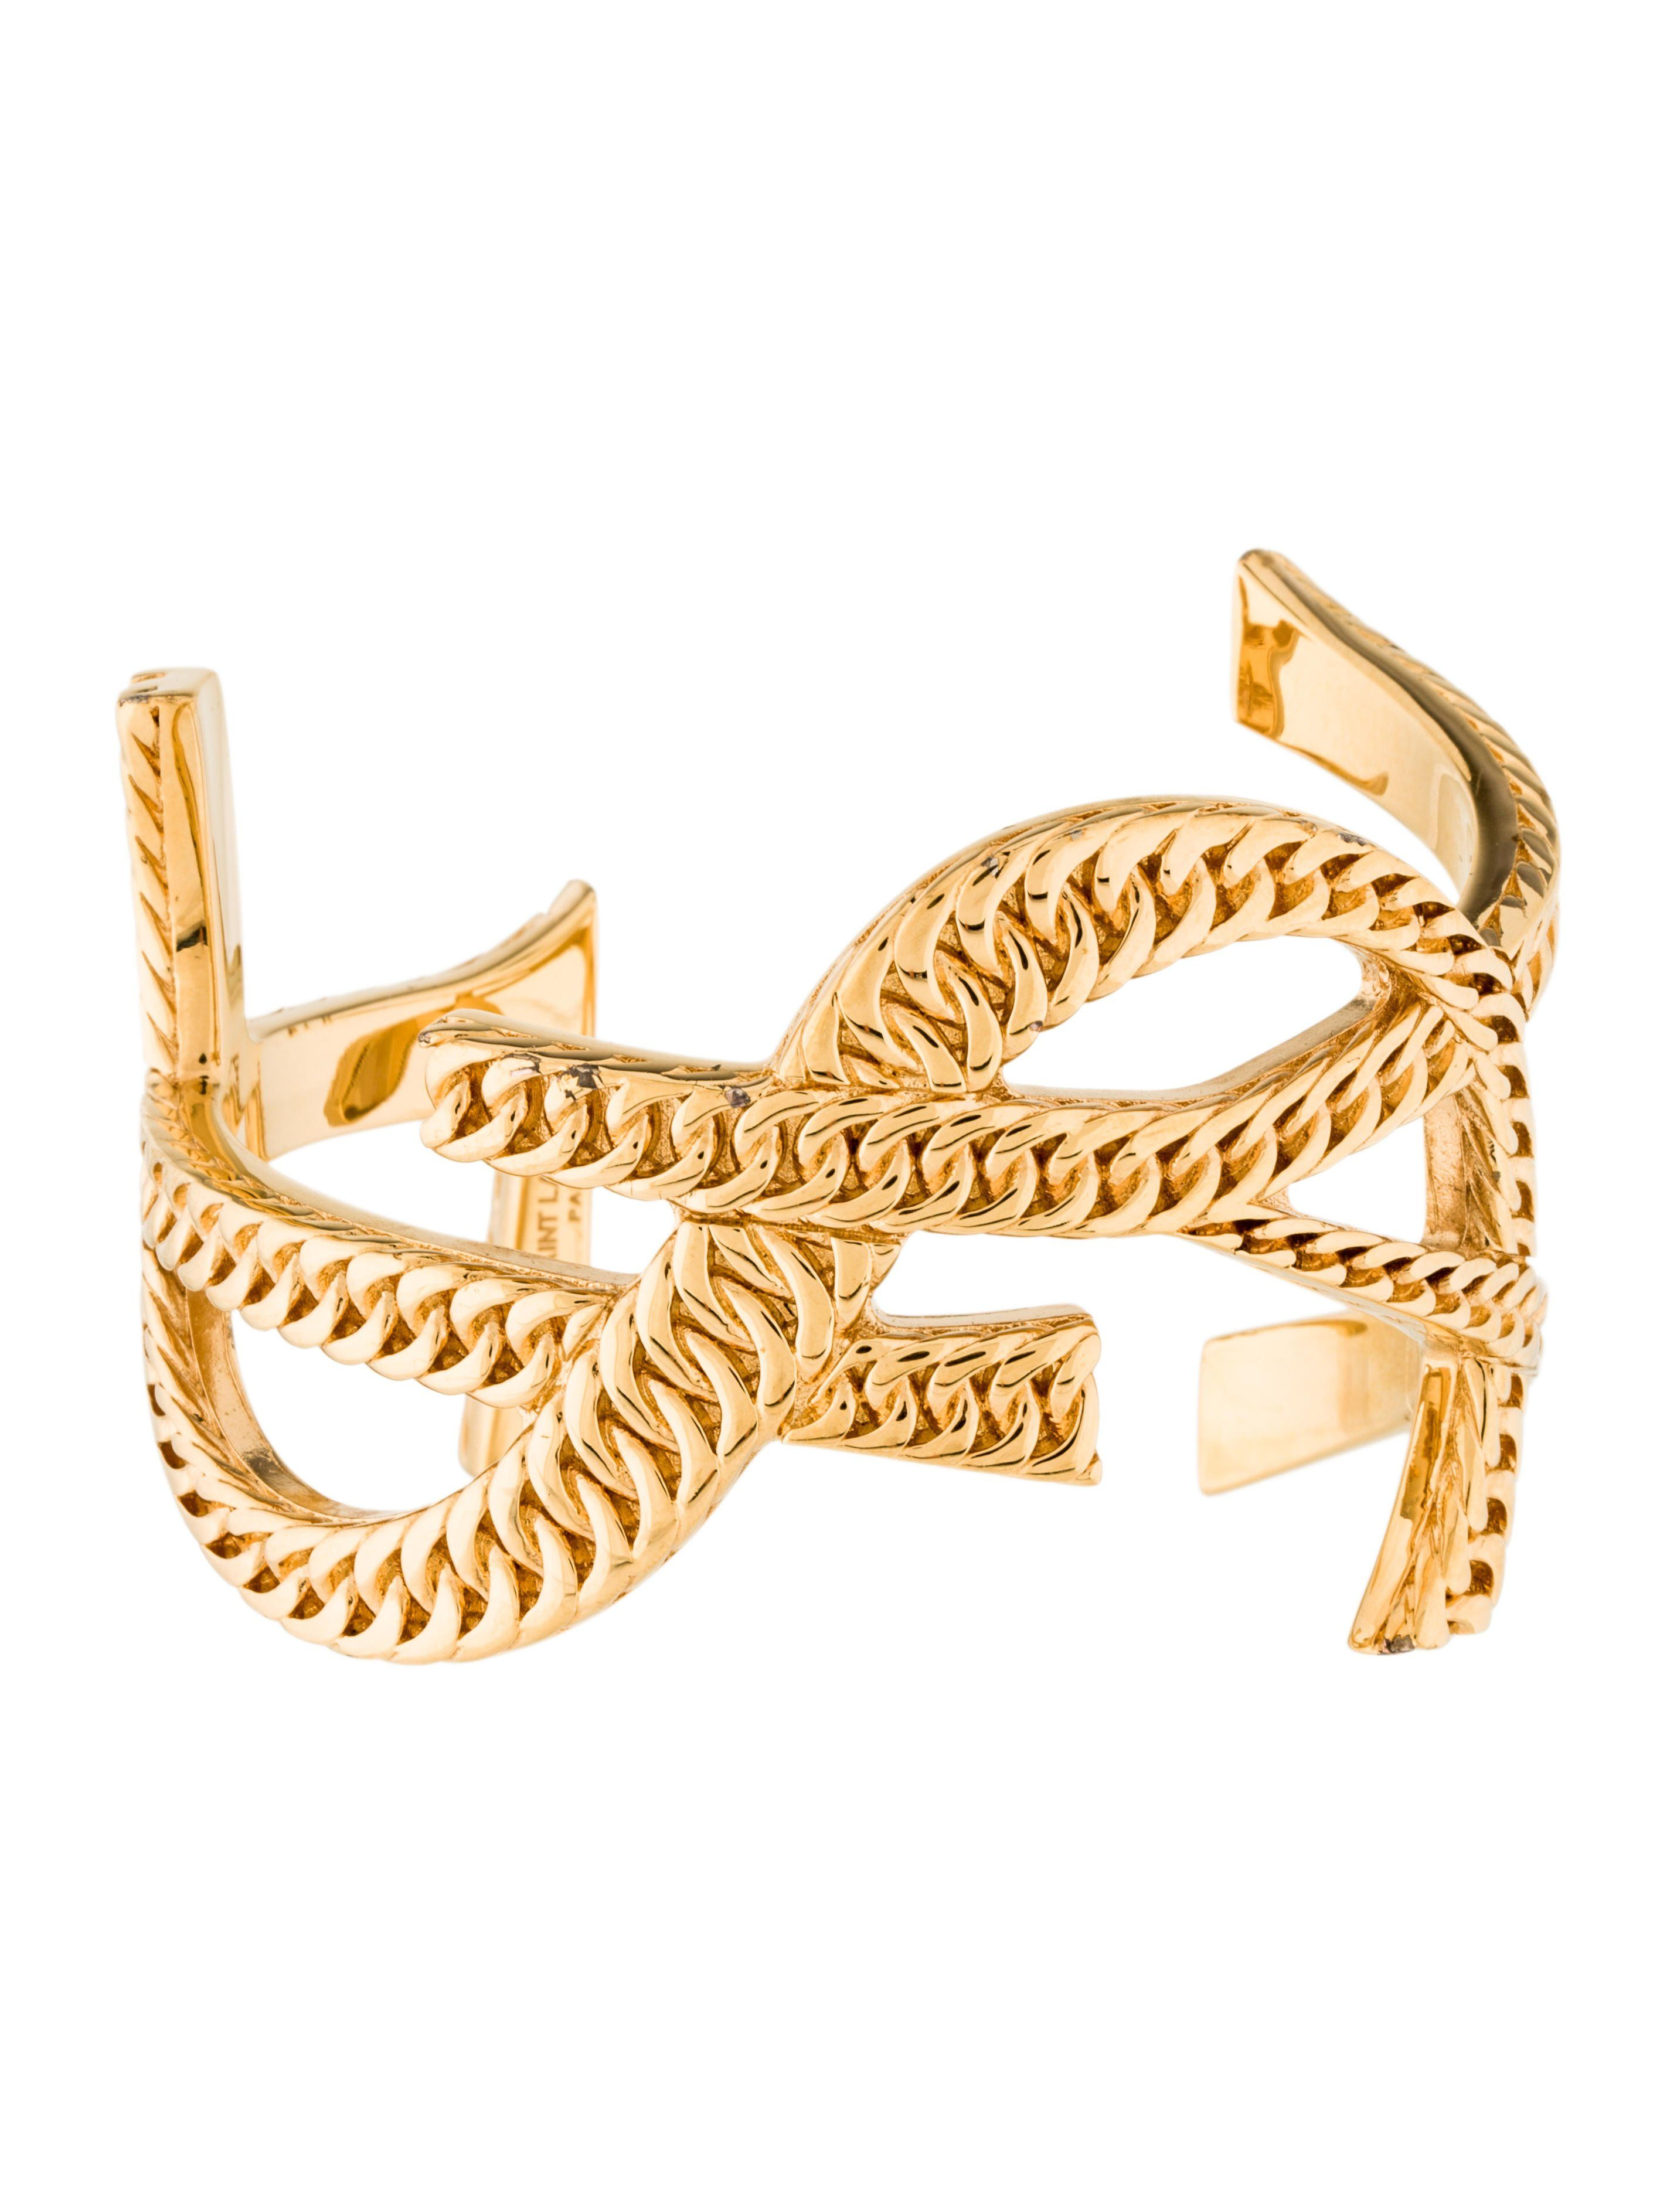 78ff26b58ac3 Gold-tone Yves Saint Laurent Monogram Cassandre cuff bracelet featuring  textured brand logo and high polish finish throughout.